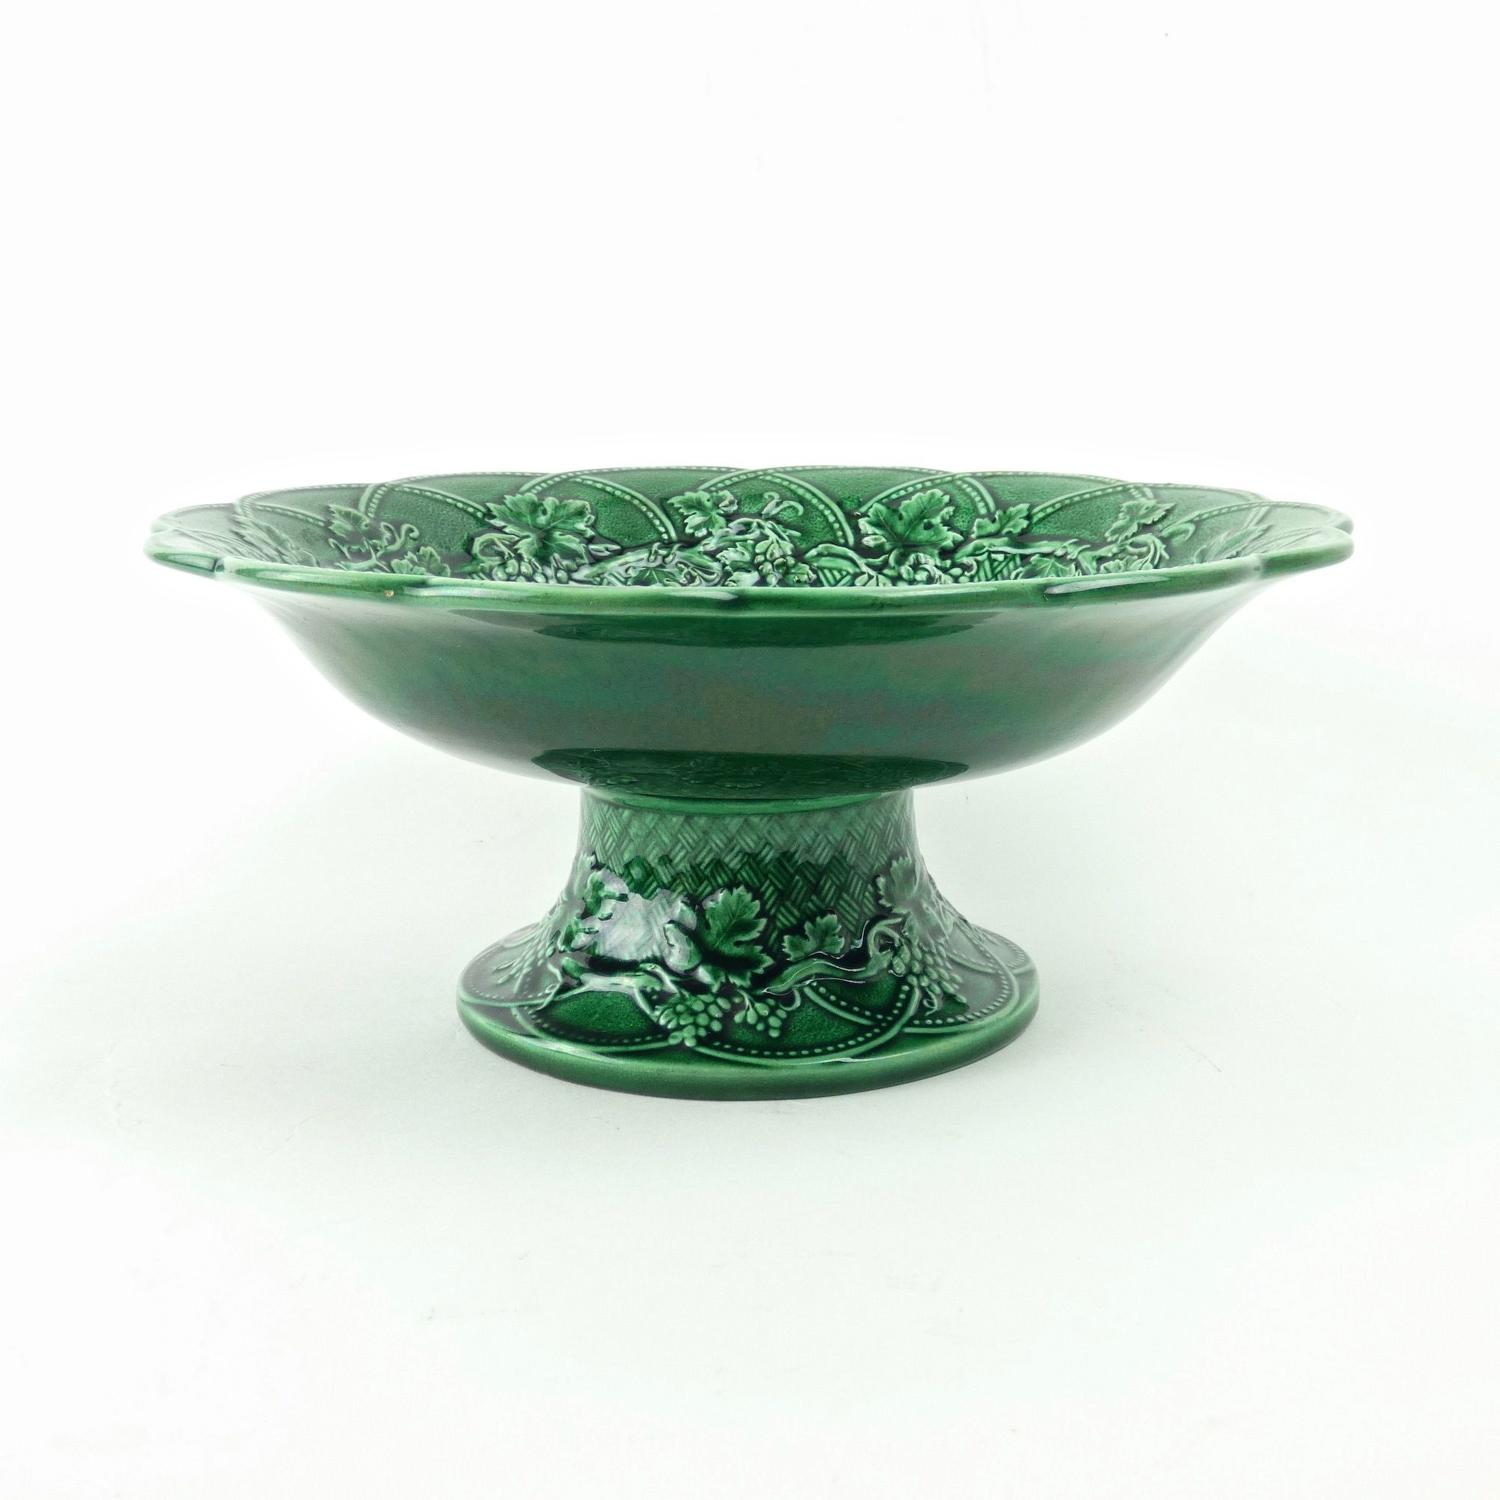 Wedgwood, green majolica comport